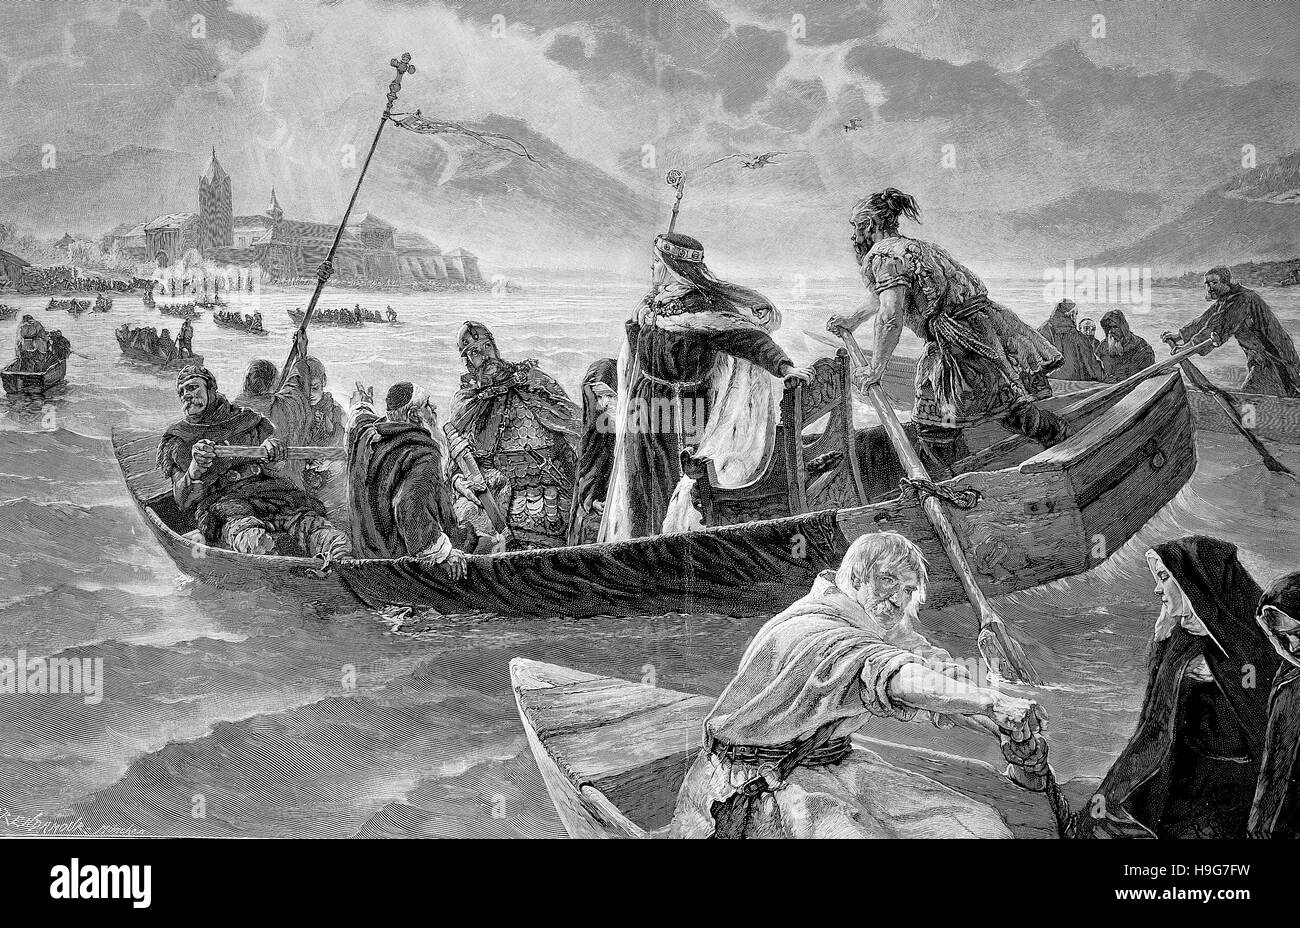 arrival of abbess Irmgard at Frauenchiemsee, Germany, in the year 894 - Stock Image